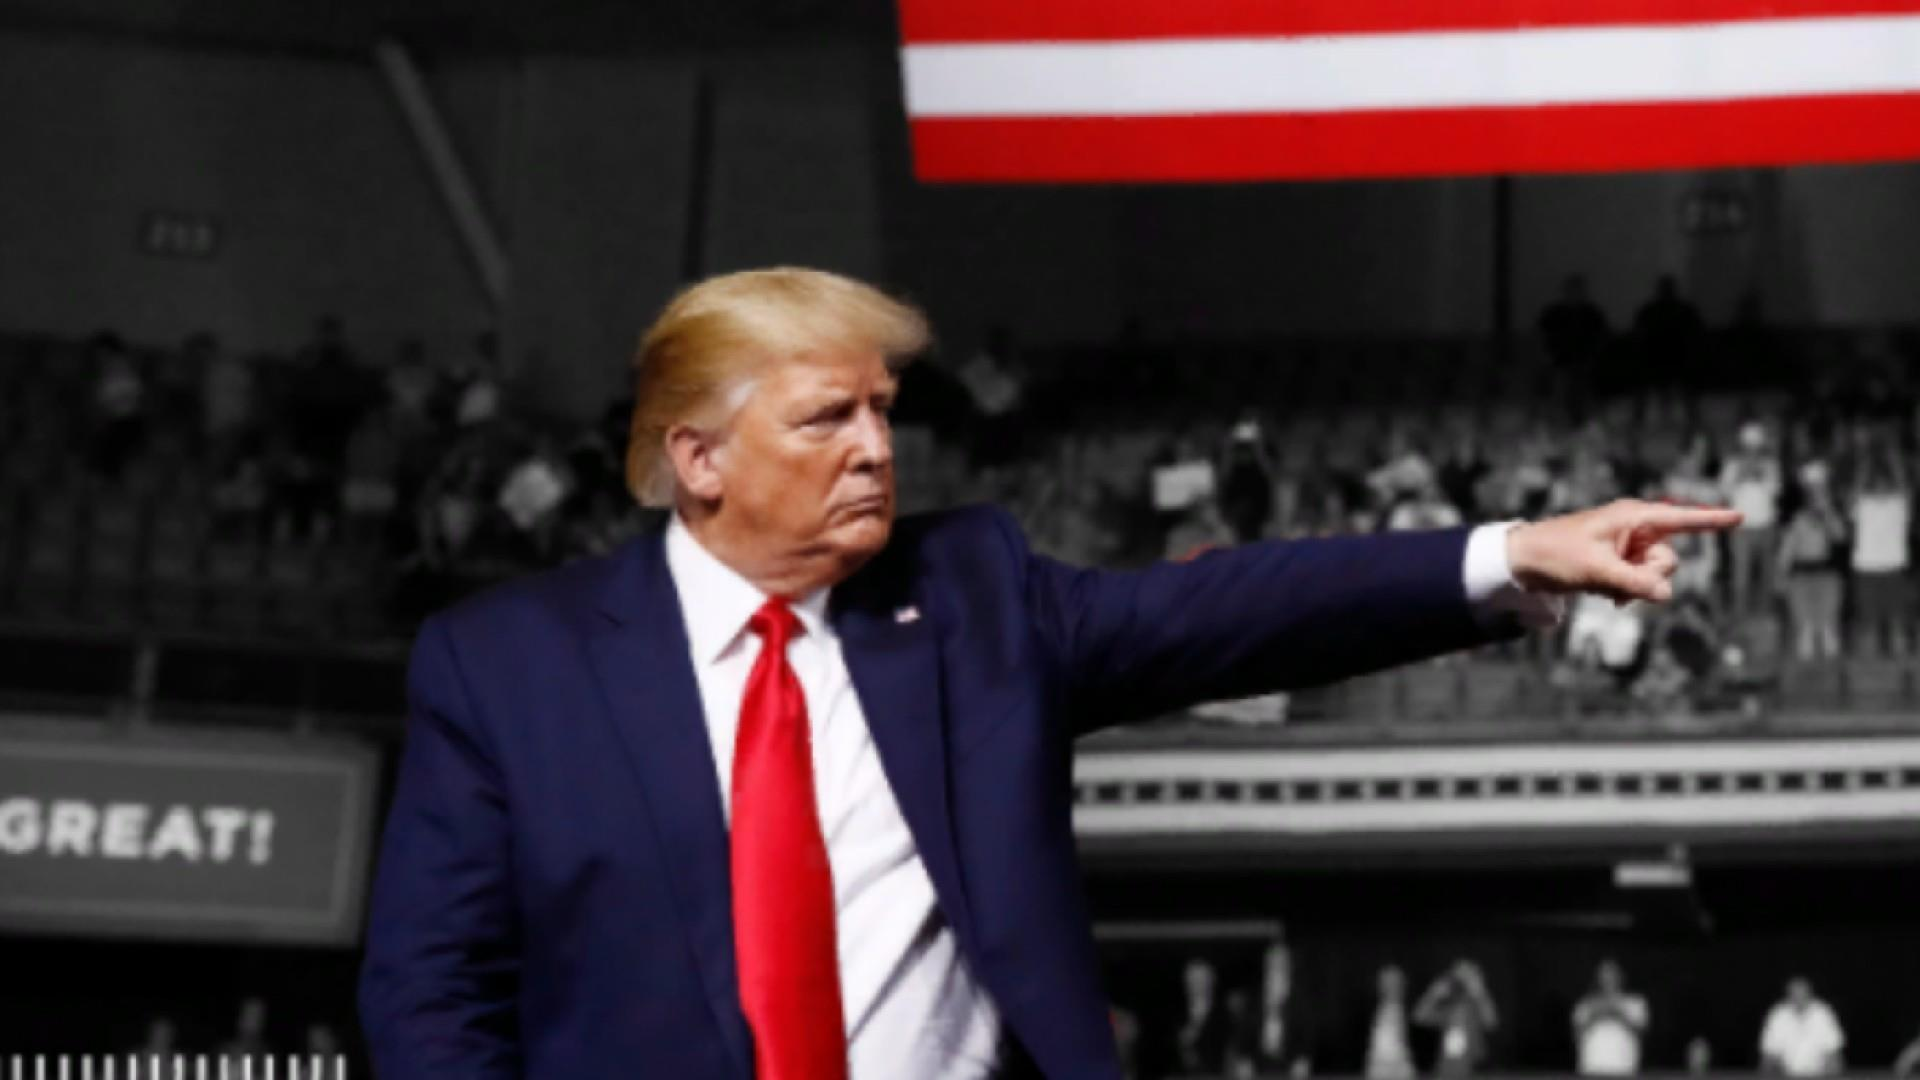 Summer of Trump: Racism, a trade war, buying Greenland, bed bugs, and more